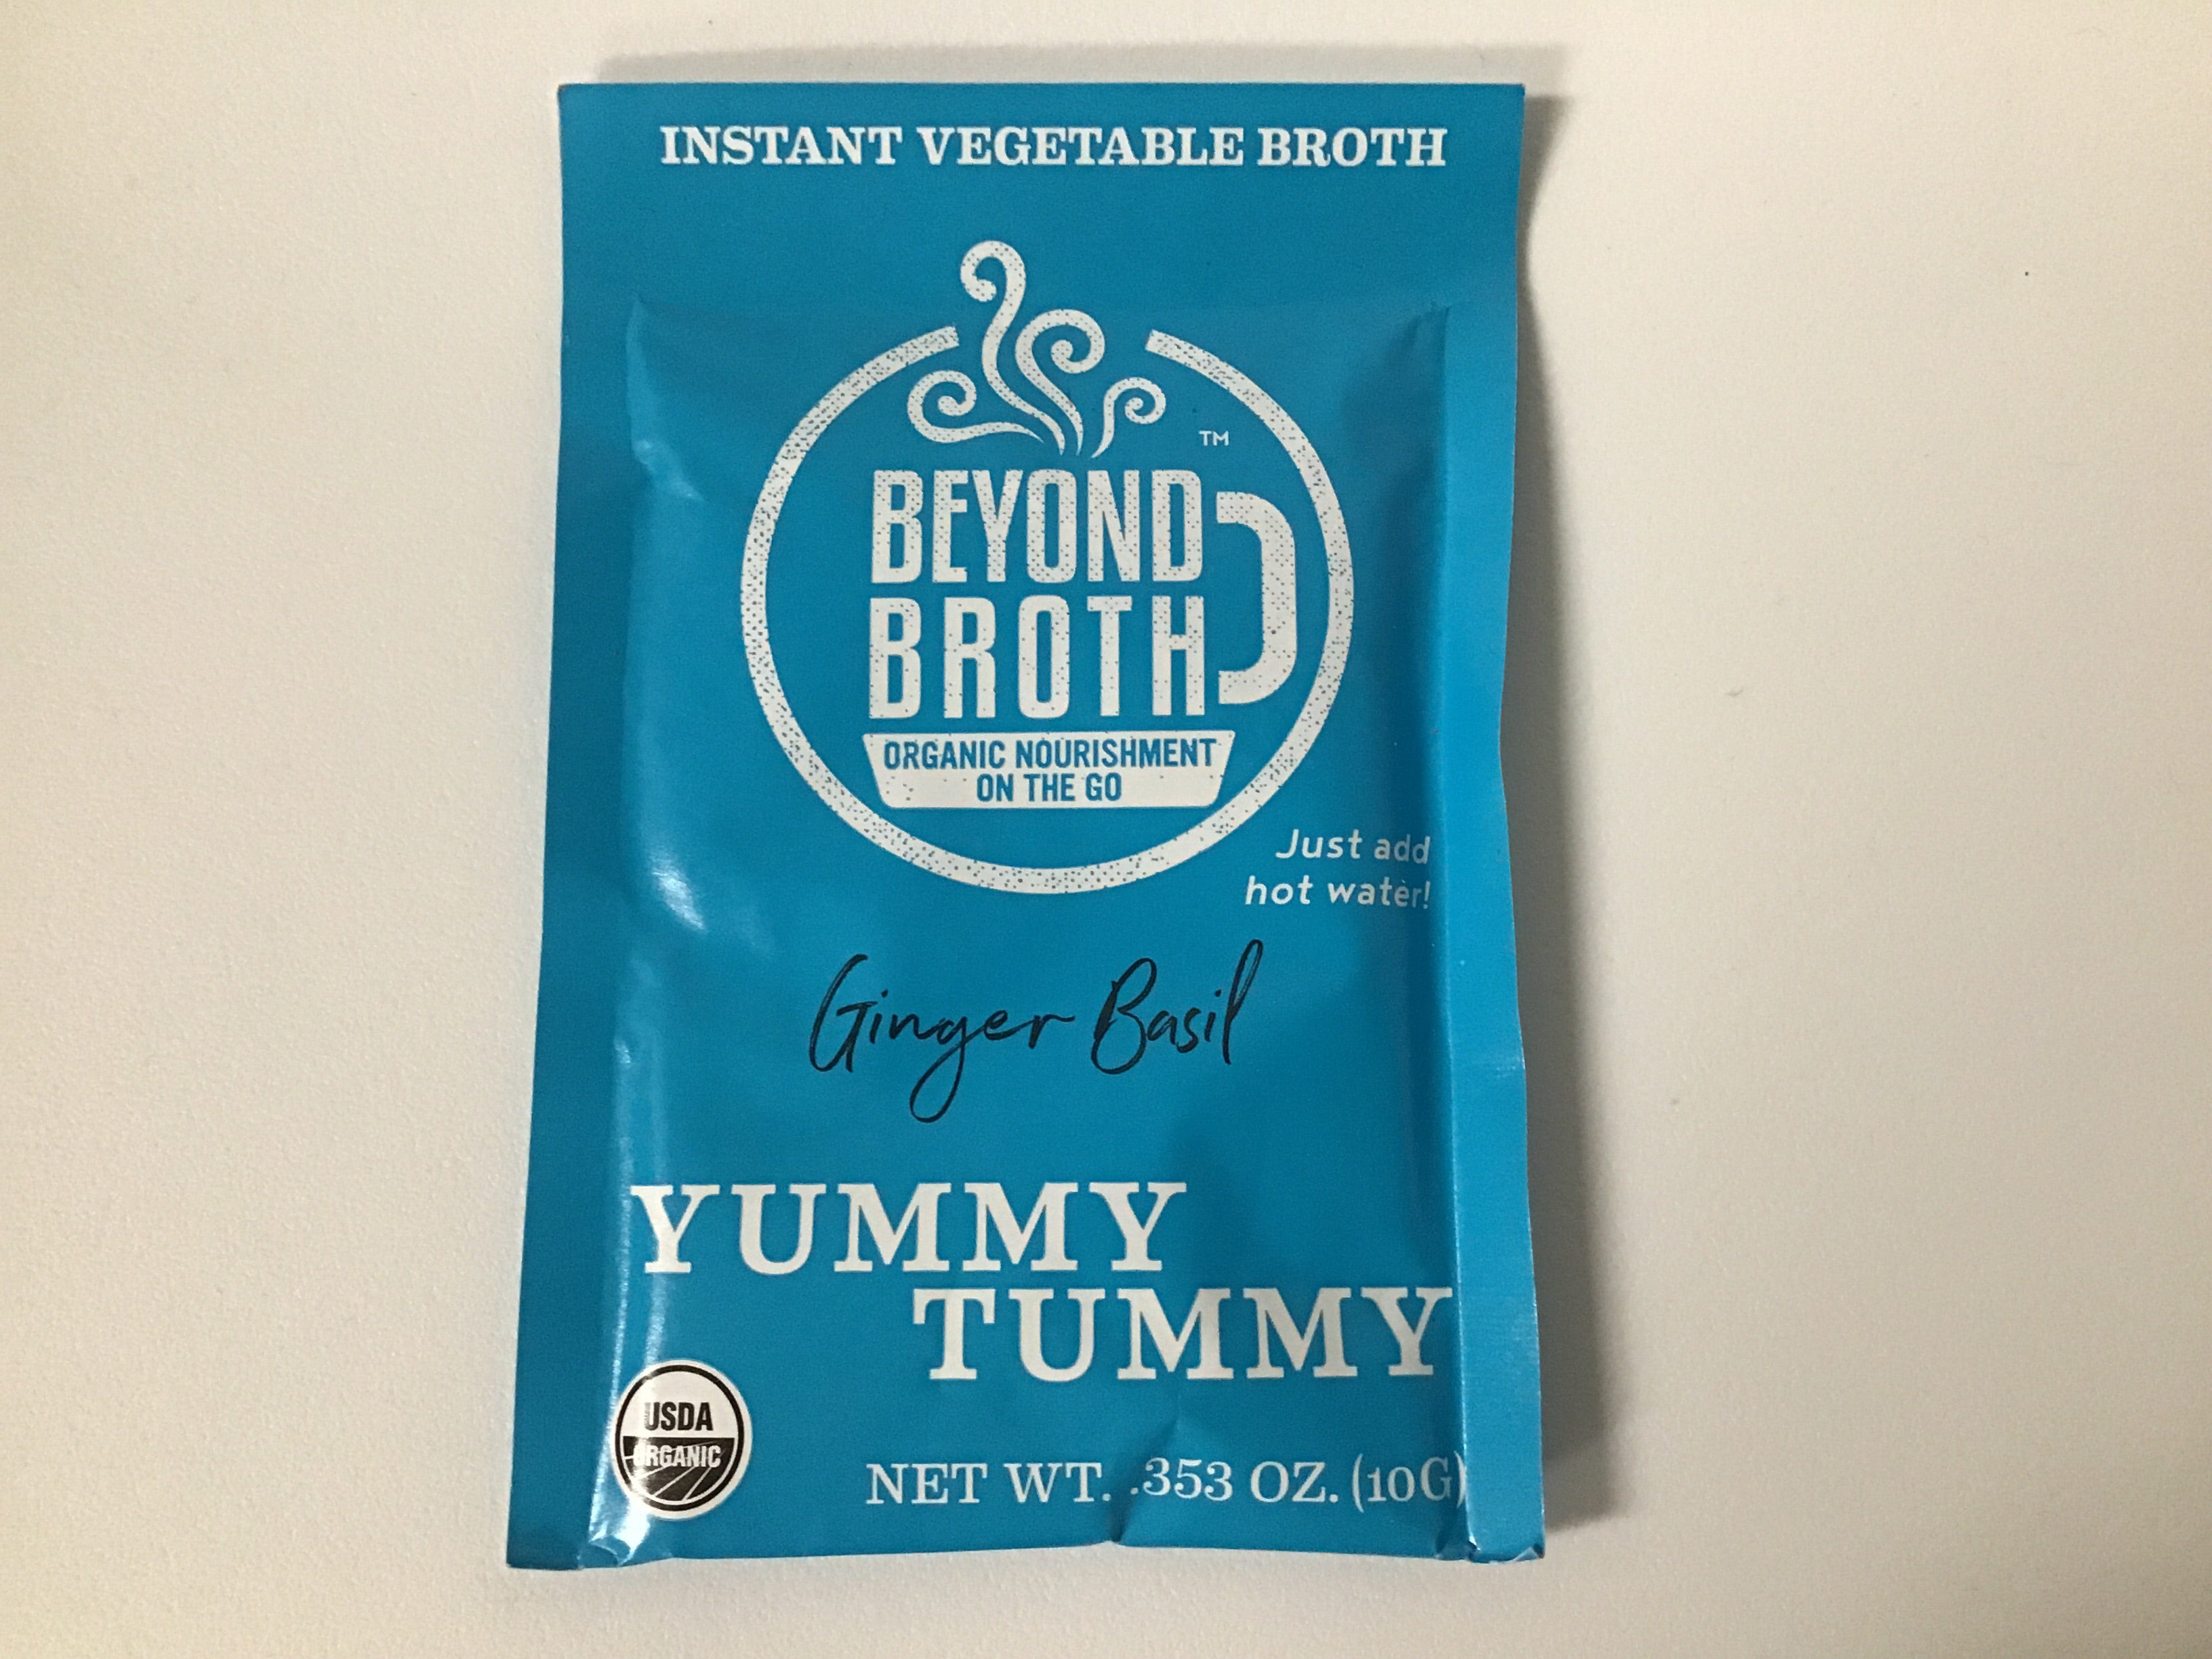 Beyond Broth - YUMMY TUMMY (Ginger Basil) Vegan Instant Broth